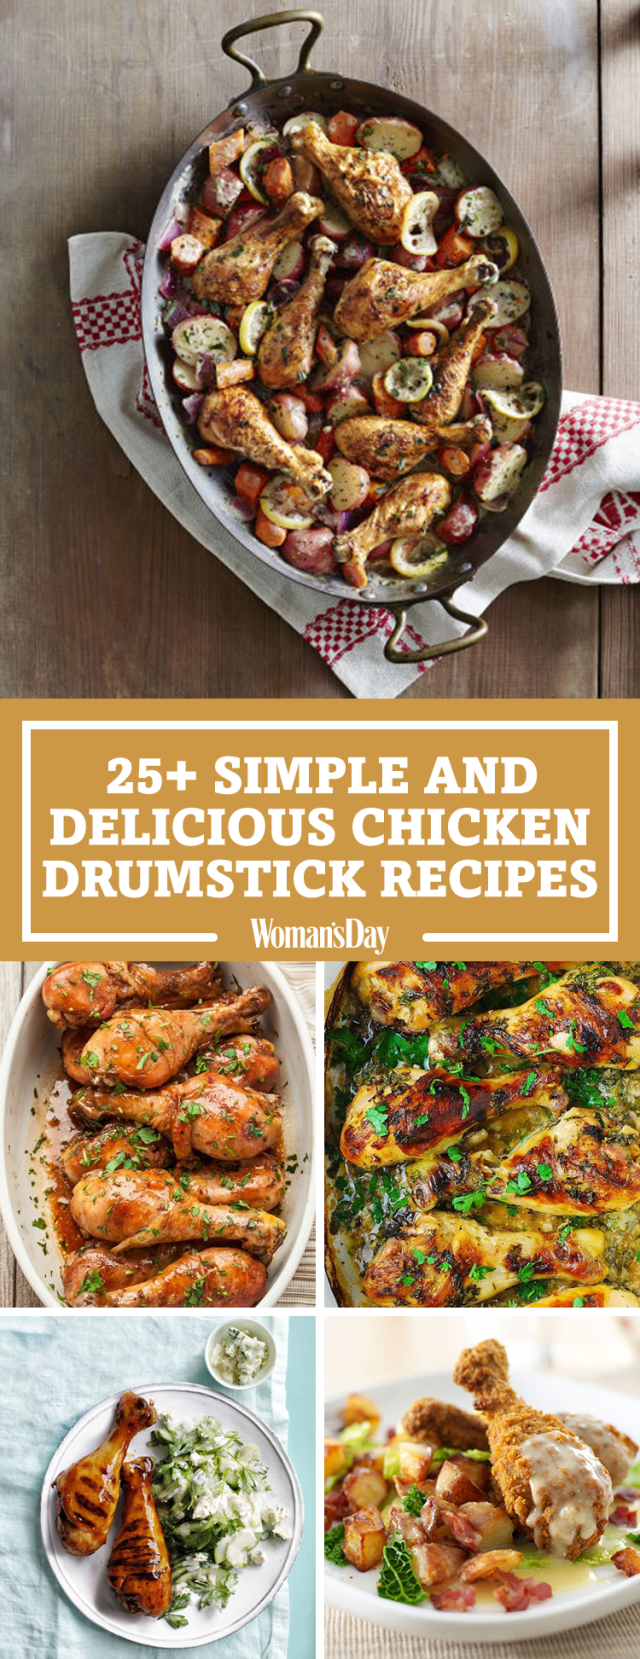 Easy and fast chicken drumstick recipes